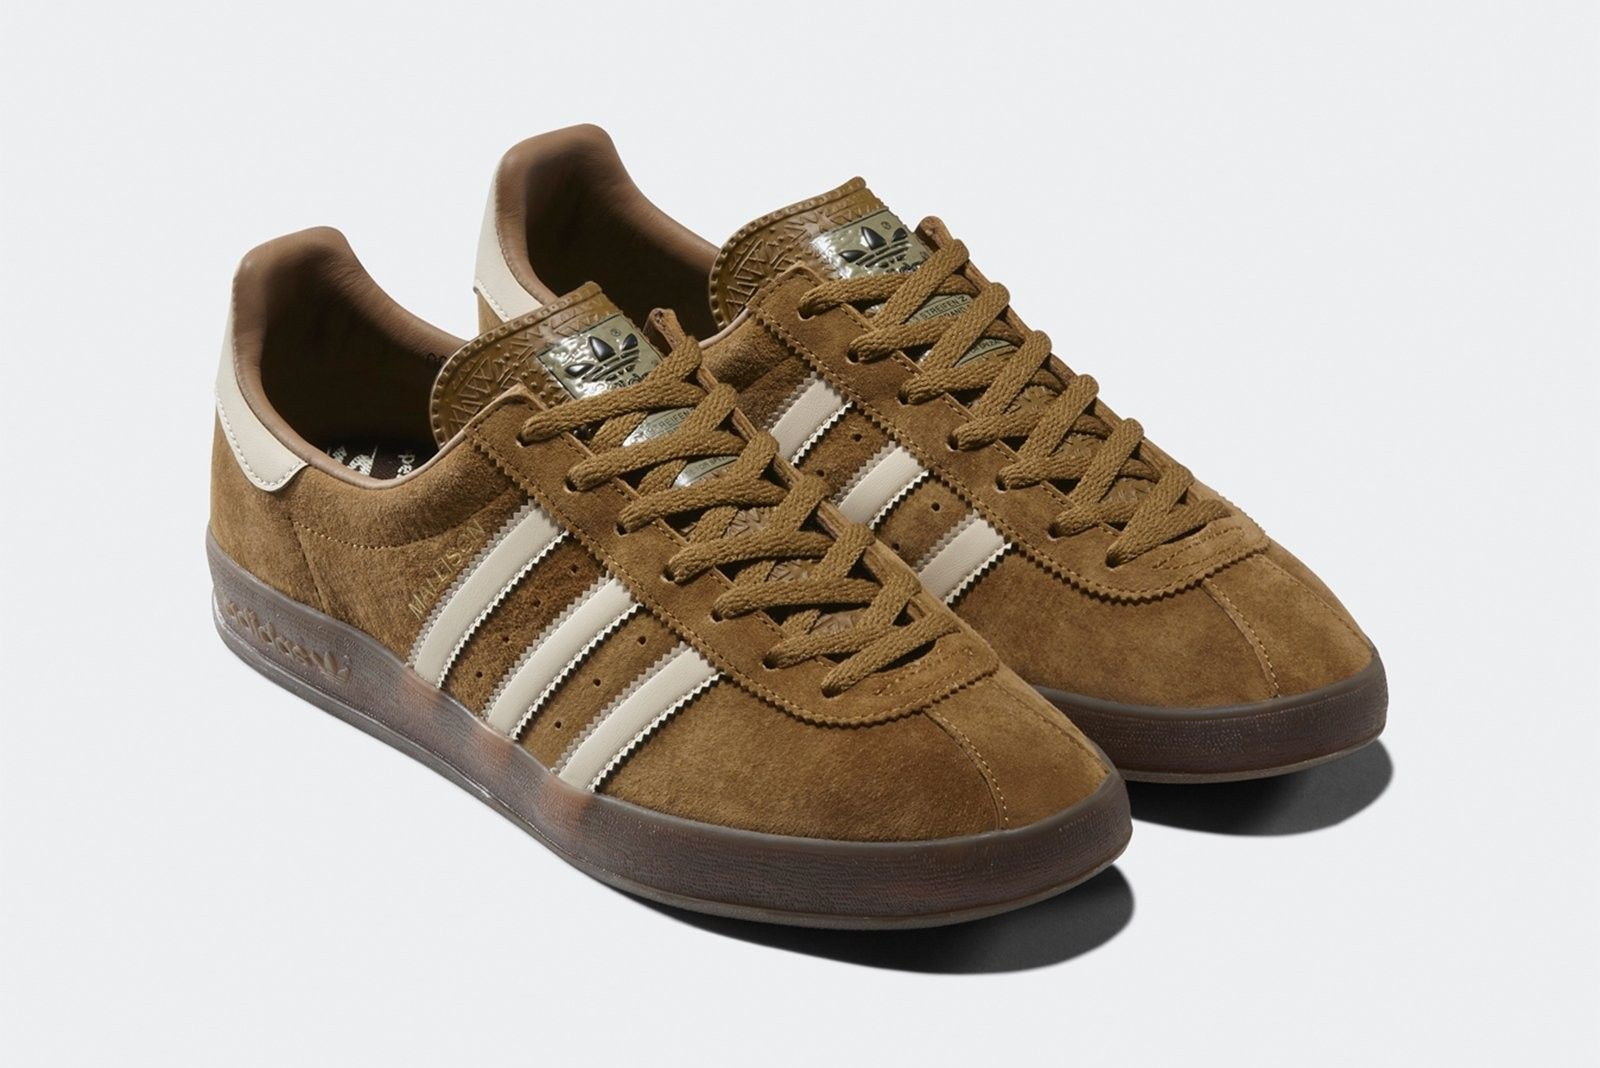 huge sale 4f3f5 7a2dc Adidas Mallison Spezial launches 21st September - Adidas Spezial AW18 range